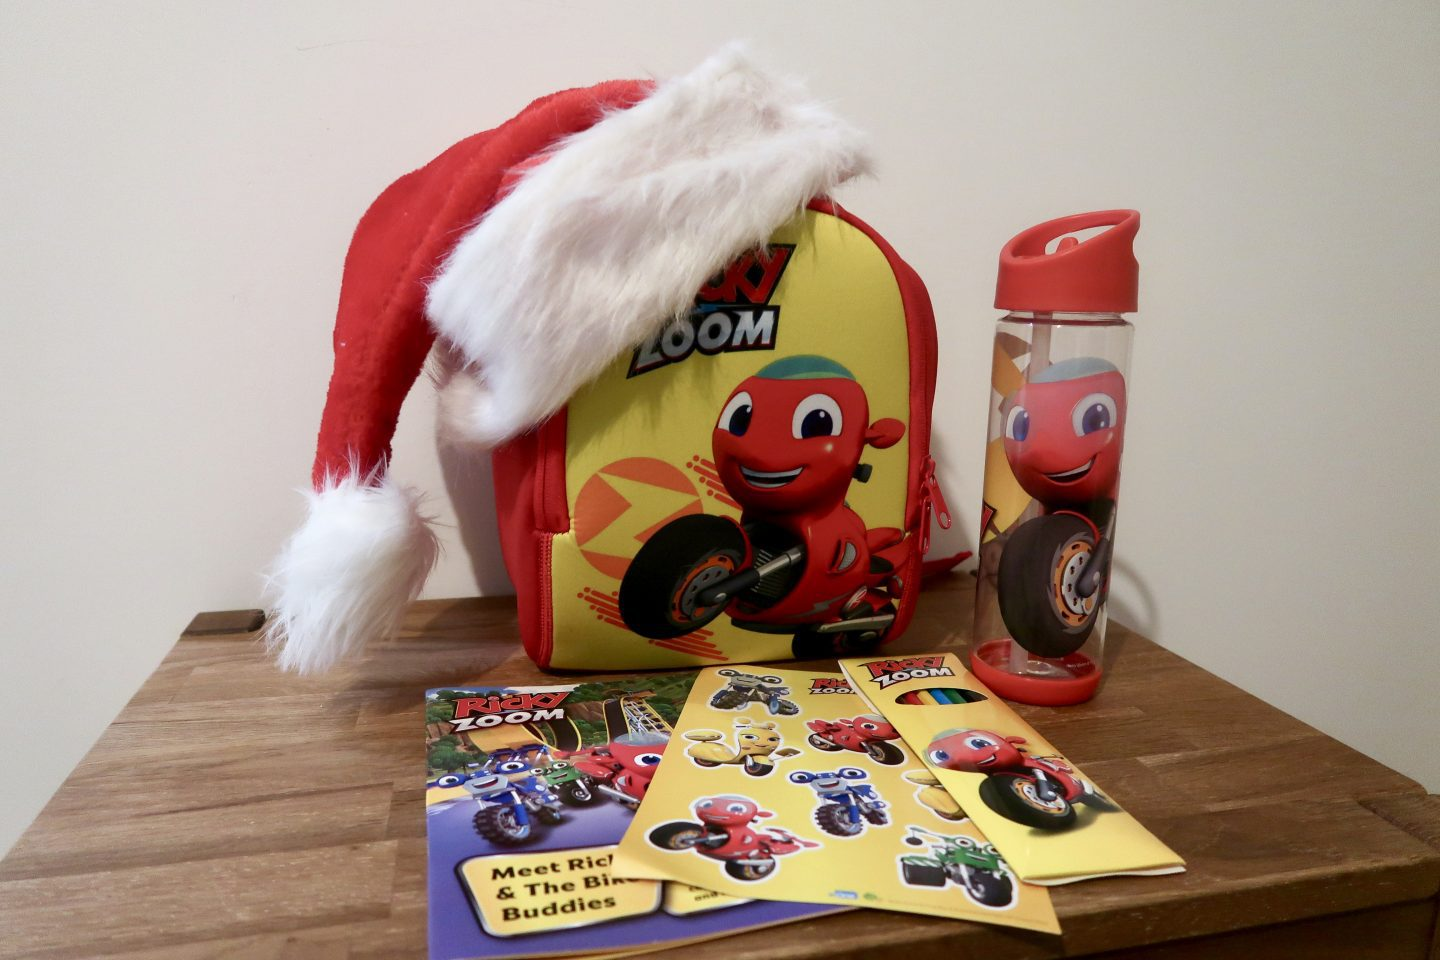 A child's backpack with the character Ricky Zoom, a red motorbike, on it and a Santa hat on the top. Next to it is a Ricky Zoom water bottle and in front are some stickers and activity books al with Ricky Zoom